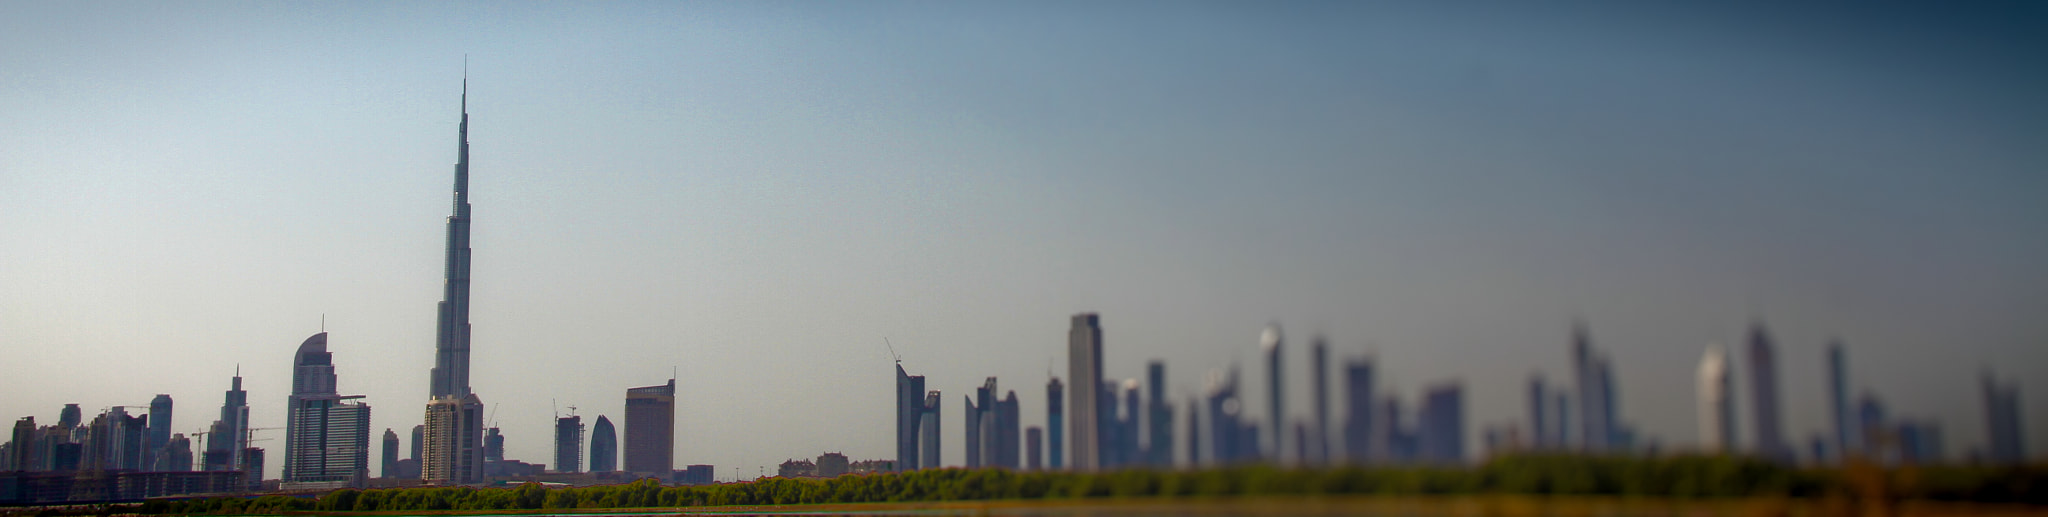 Photograph Dubai Skyline 2 by Michael Tedford on 500px